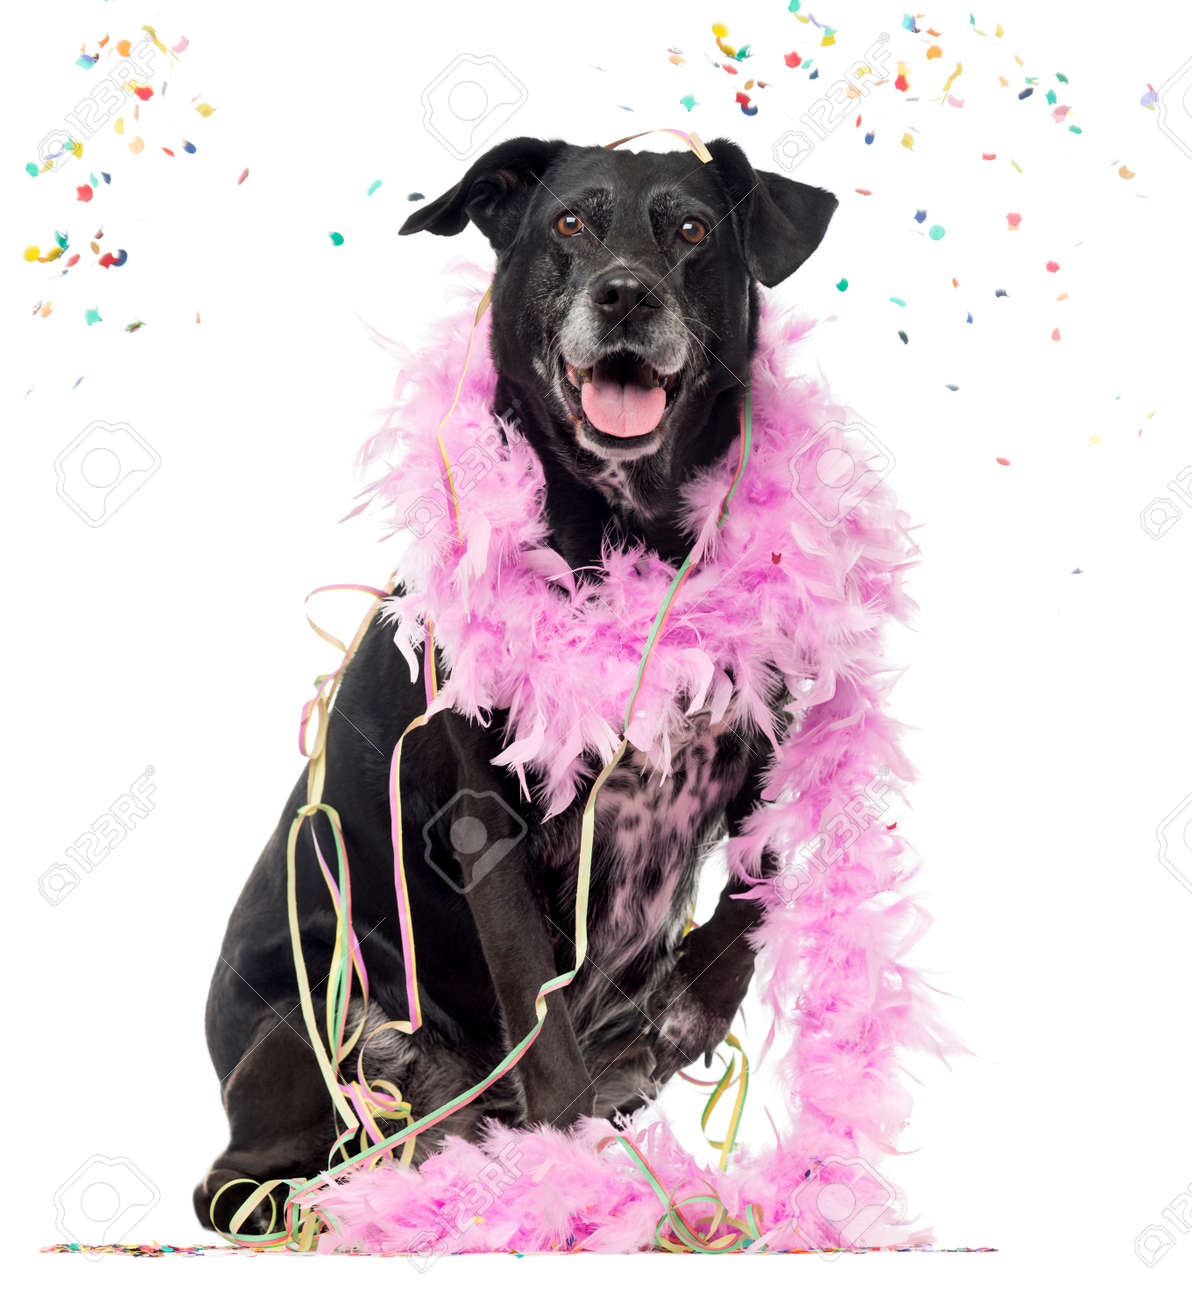 Crossbreed Dog Partying Isolated On White 8 Years Old Stock Photo